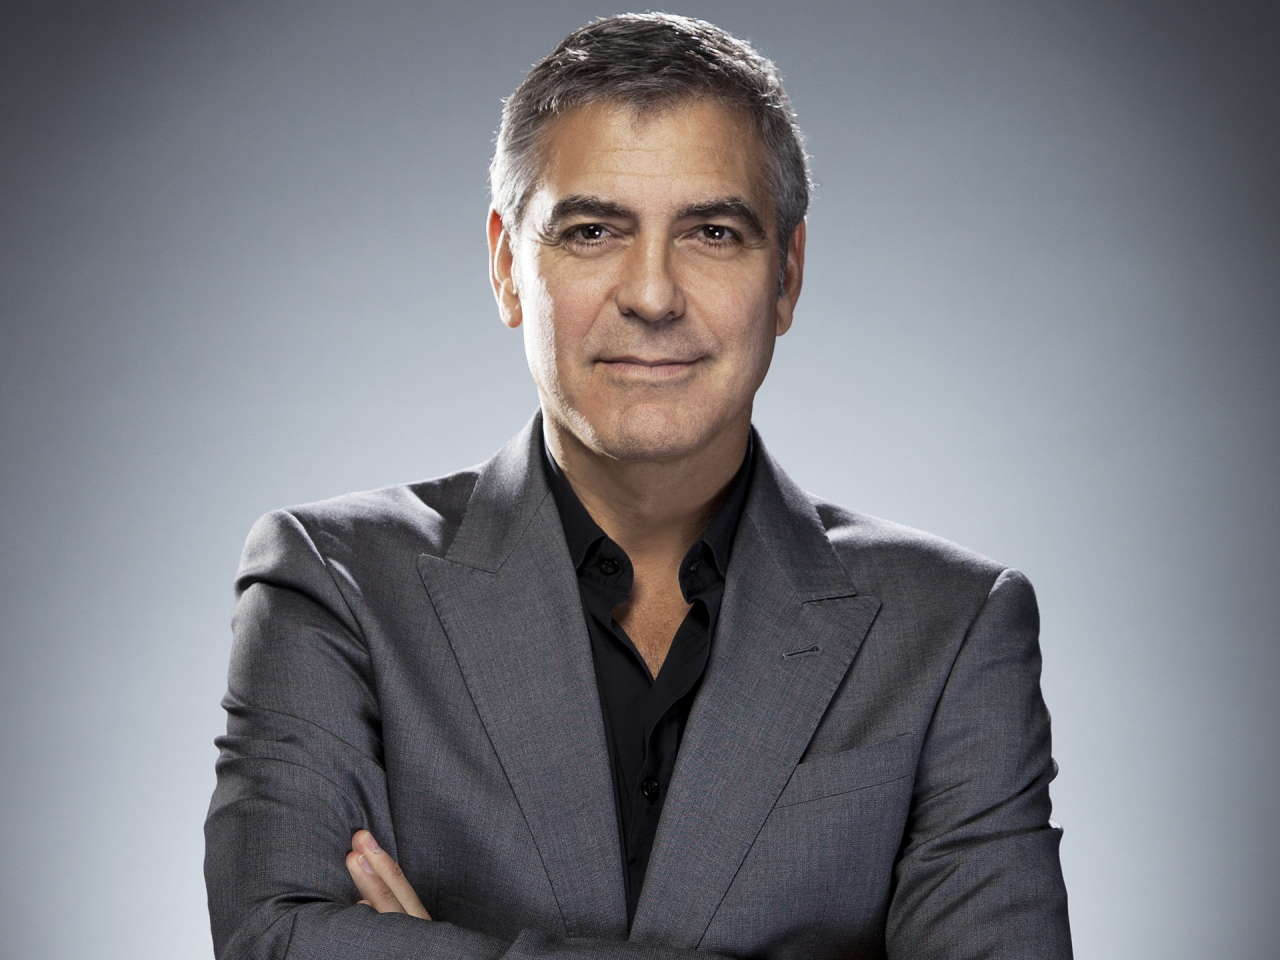 Clooney marries human rights lawyer in Venice